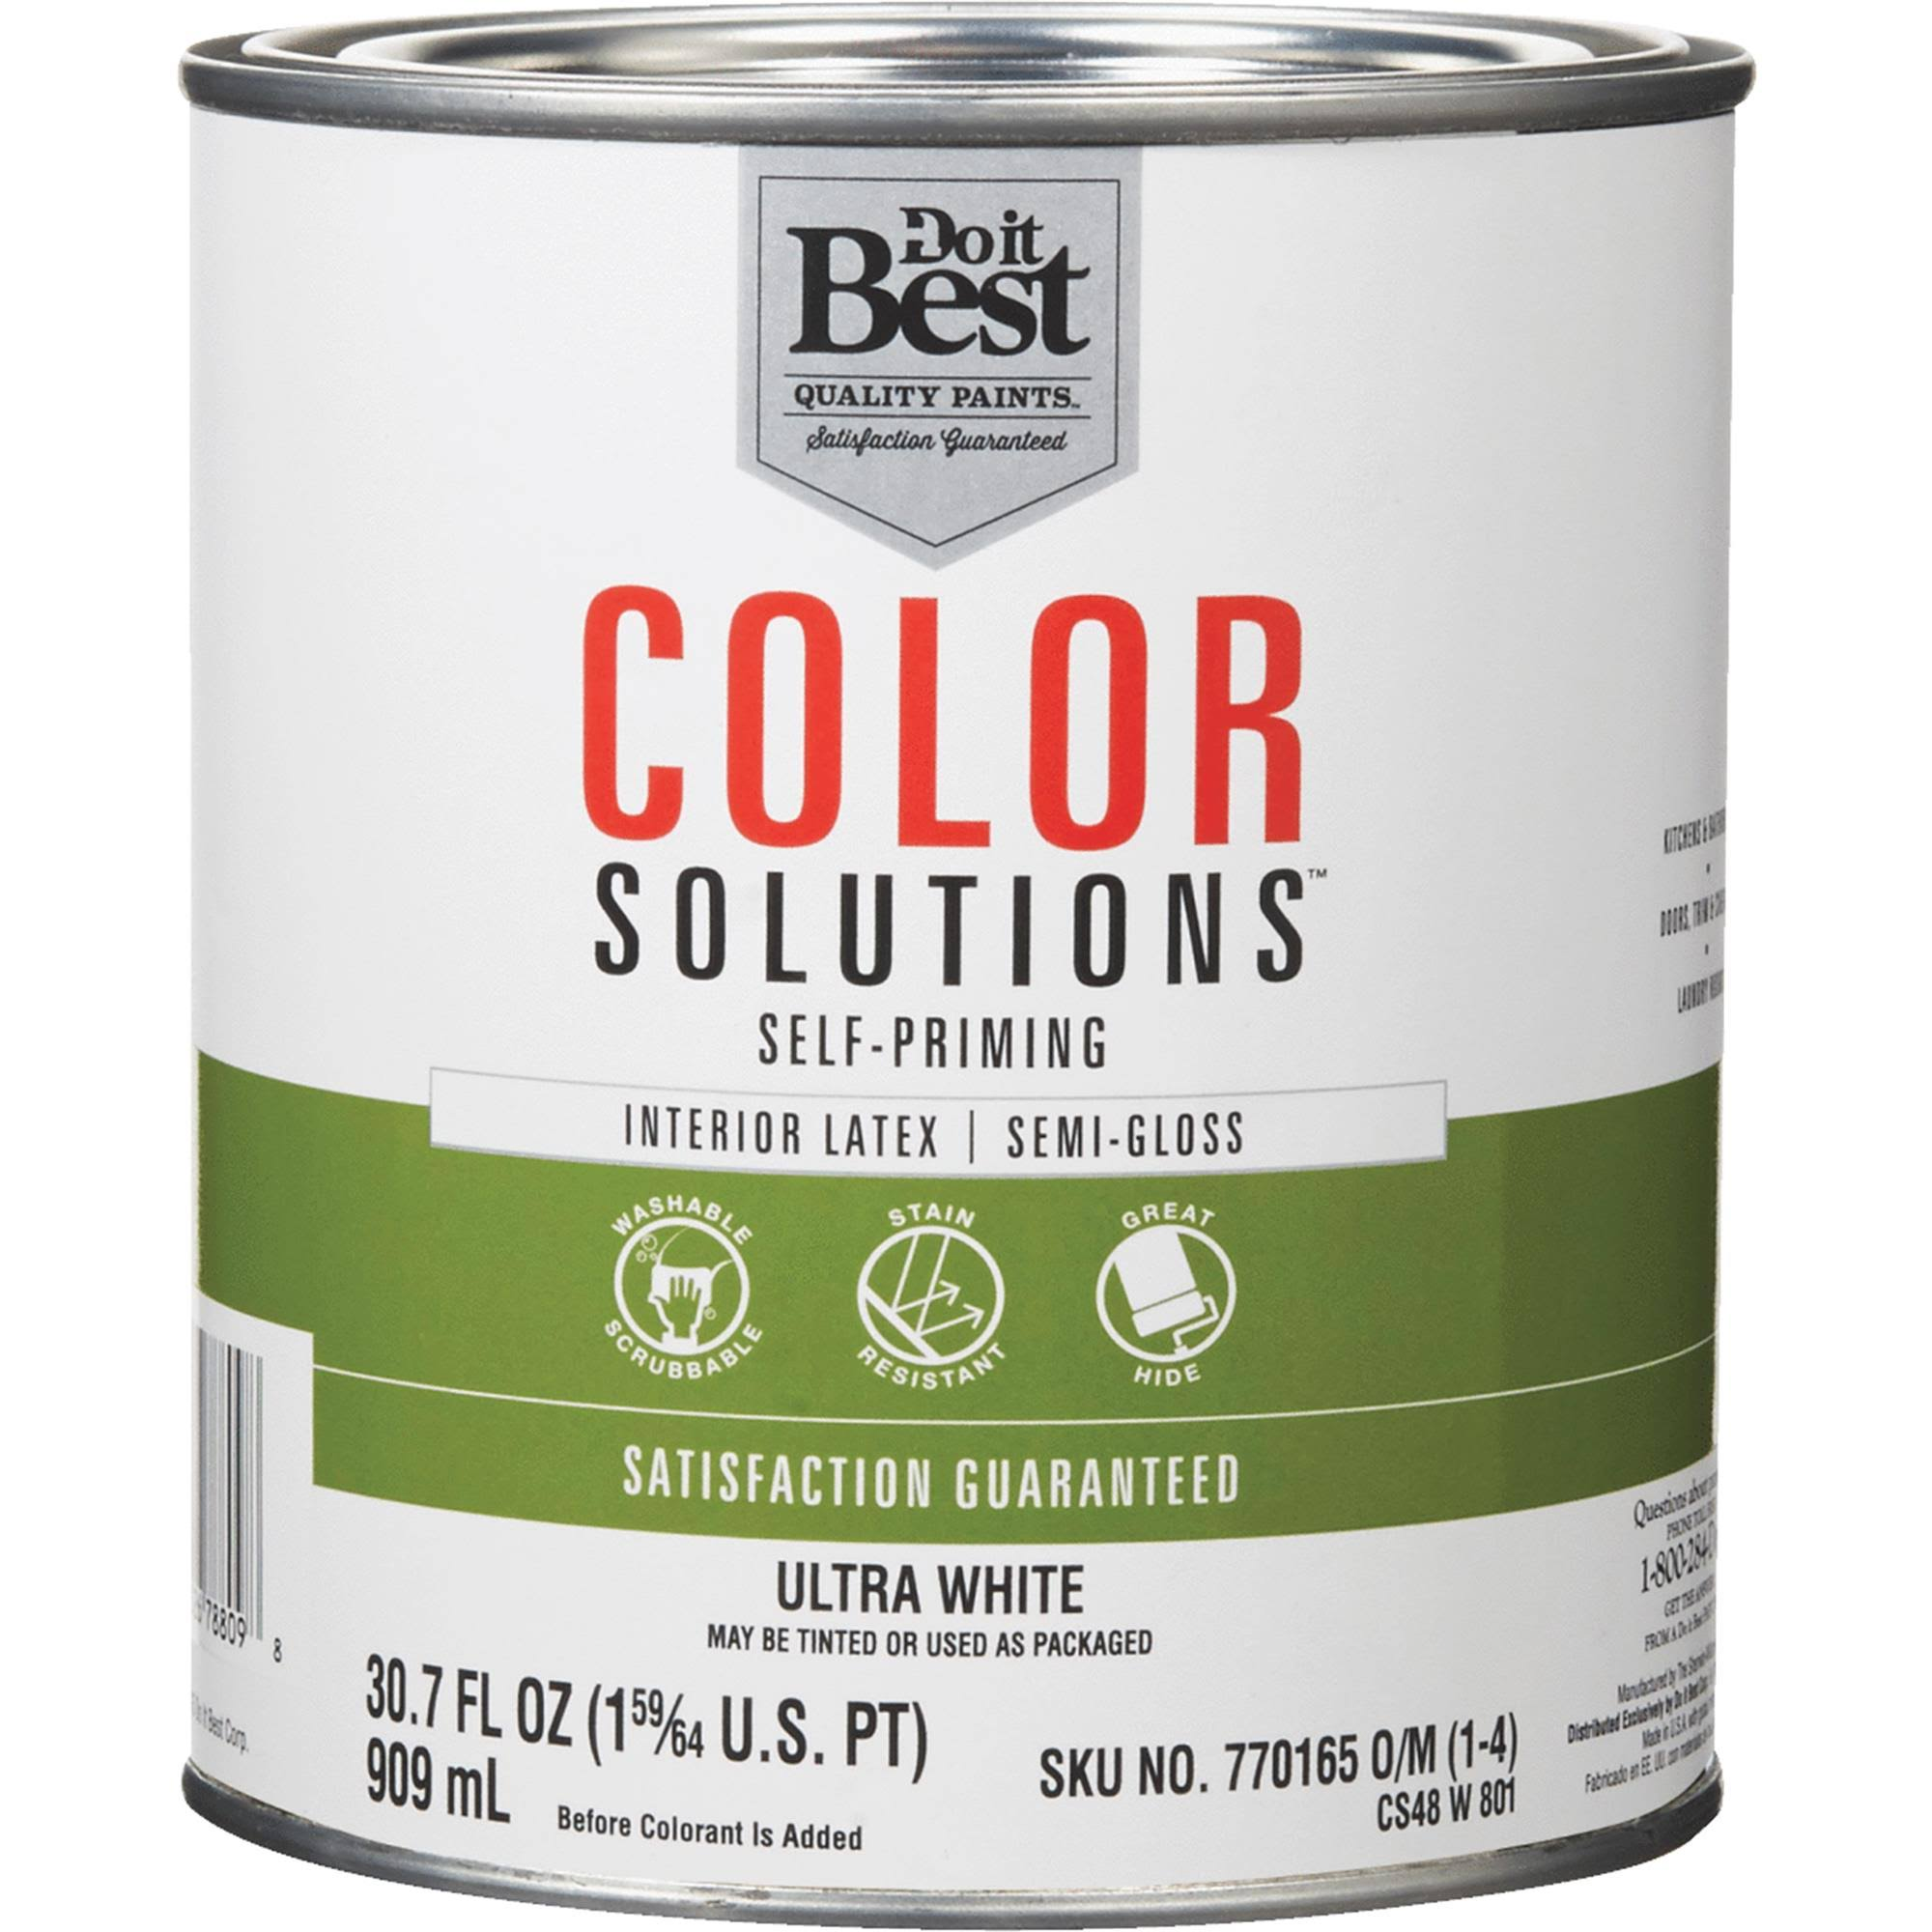 Do it Best Color Solutions Latex Self-Priming Semi-Gloss Interior Wall Paint - 29.5oz